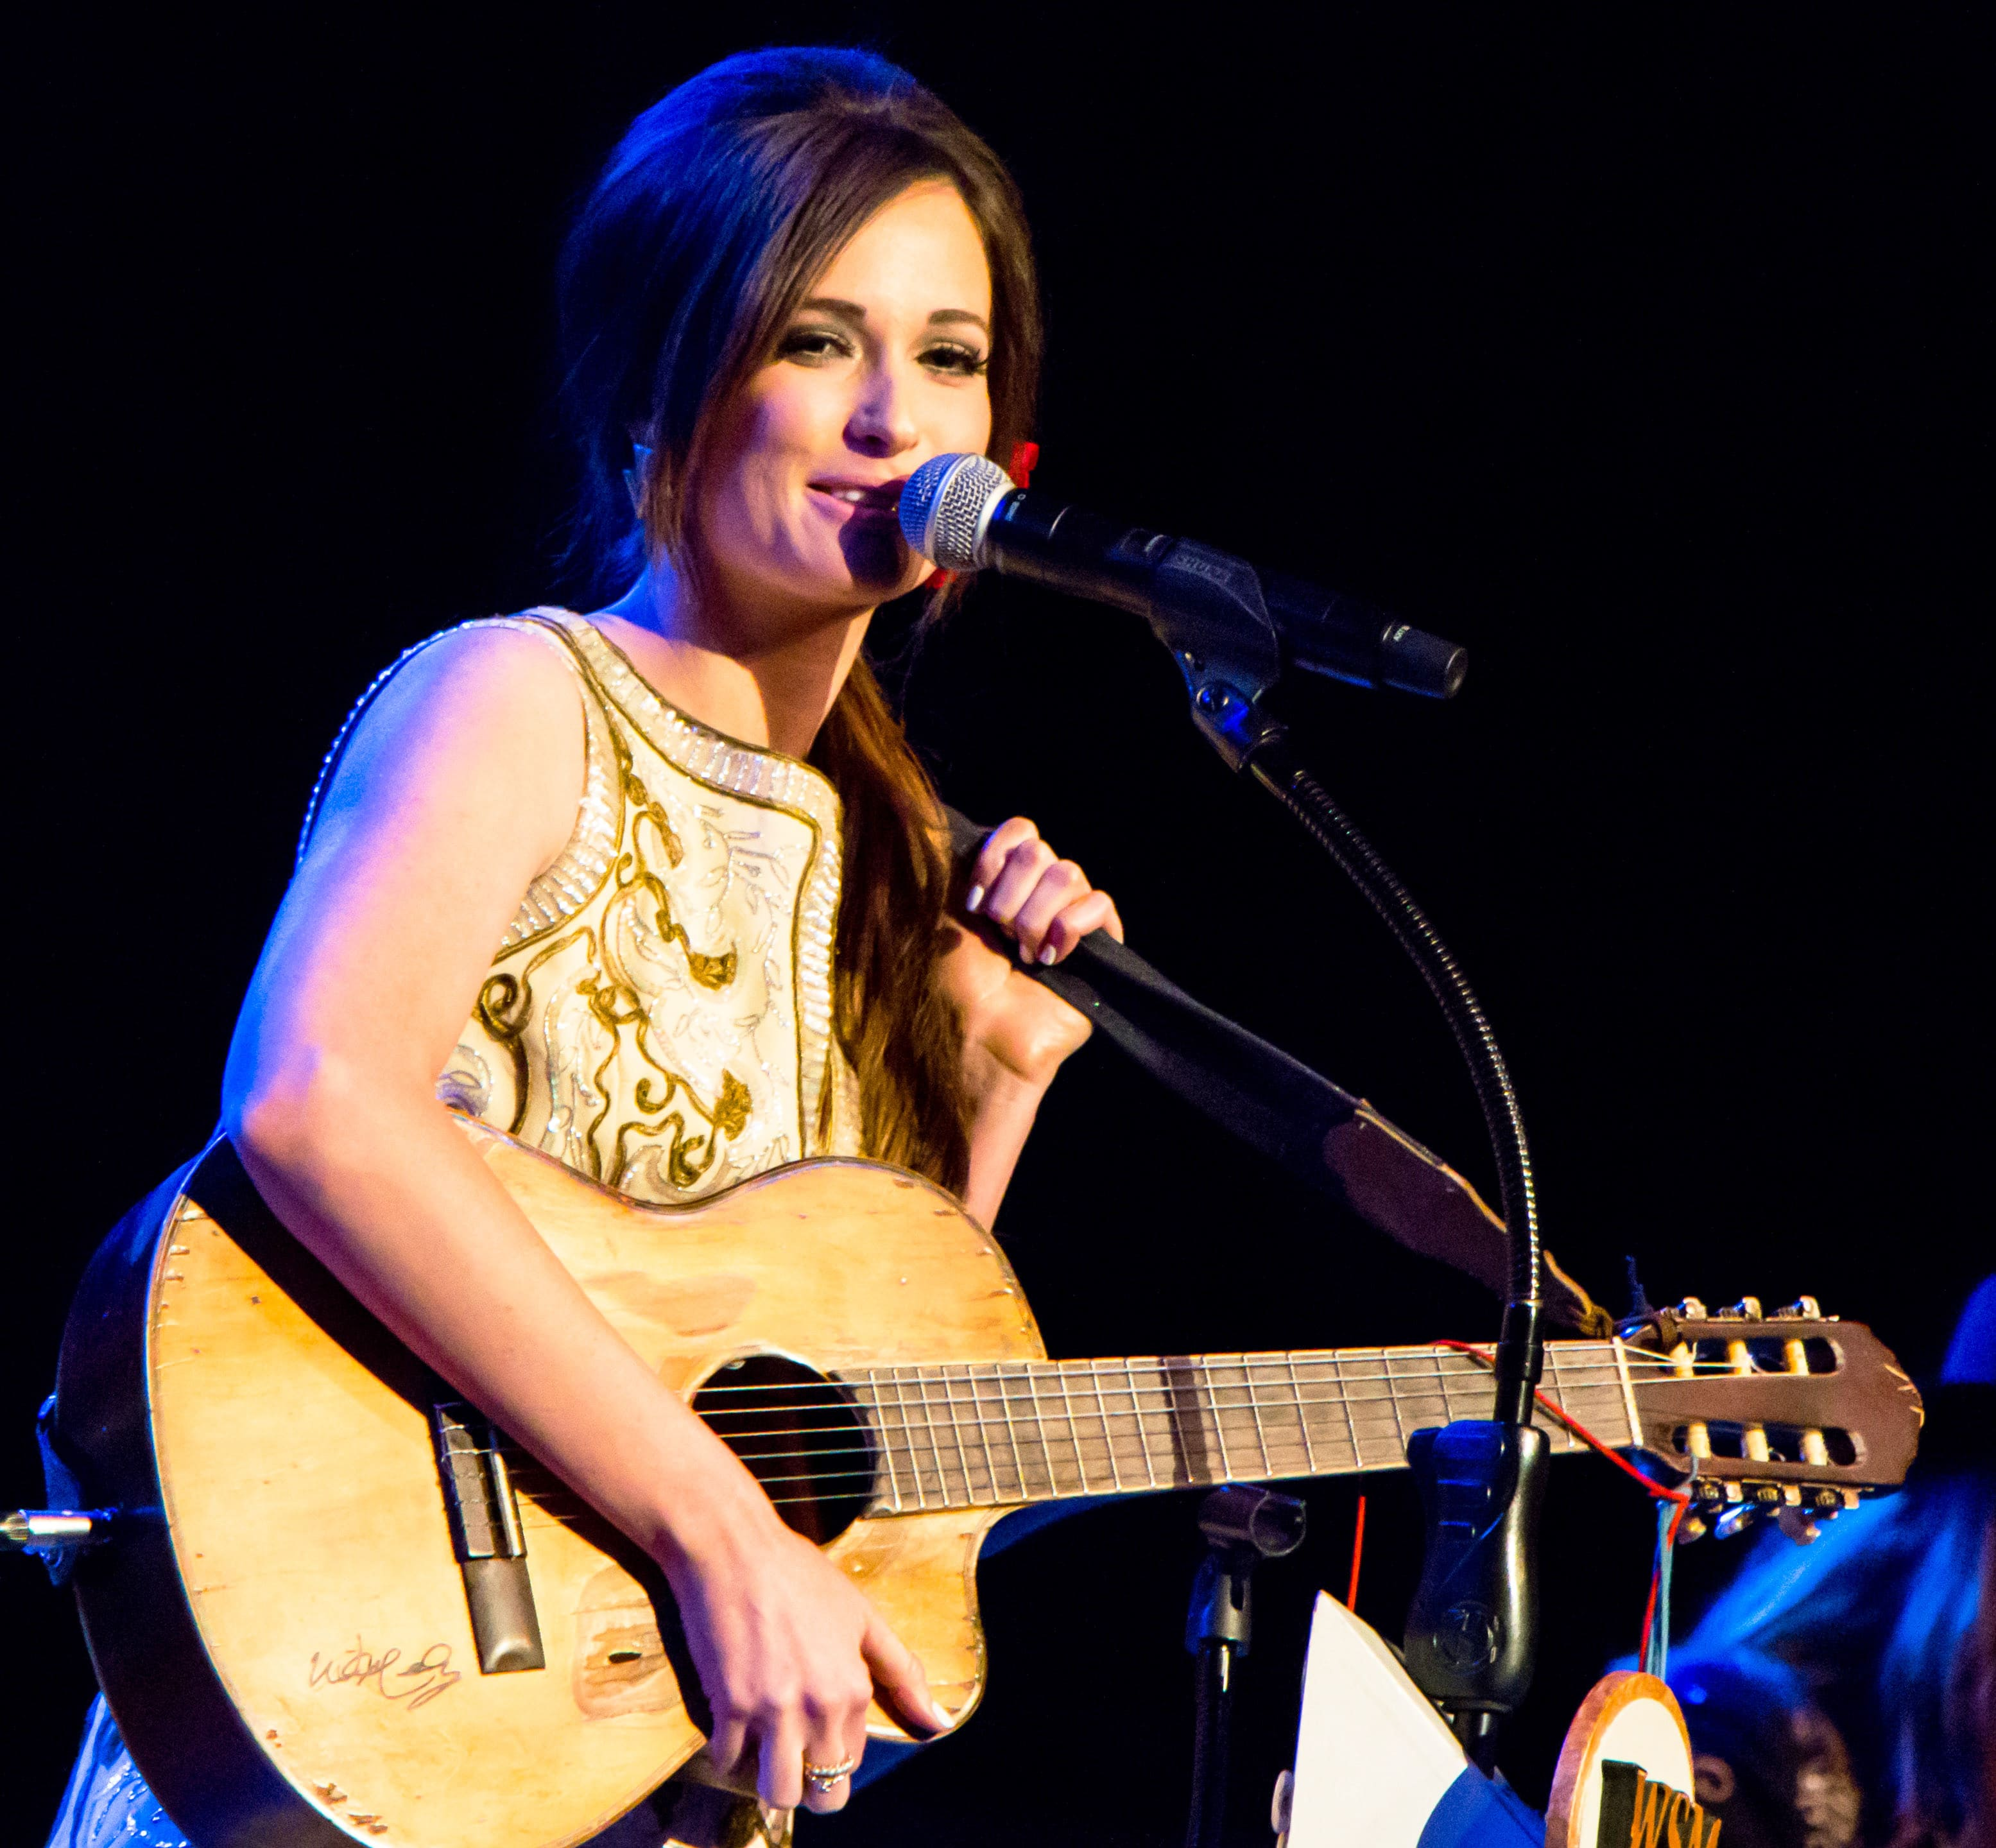 Kacey Musgraves Full hd wallpapers